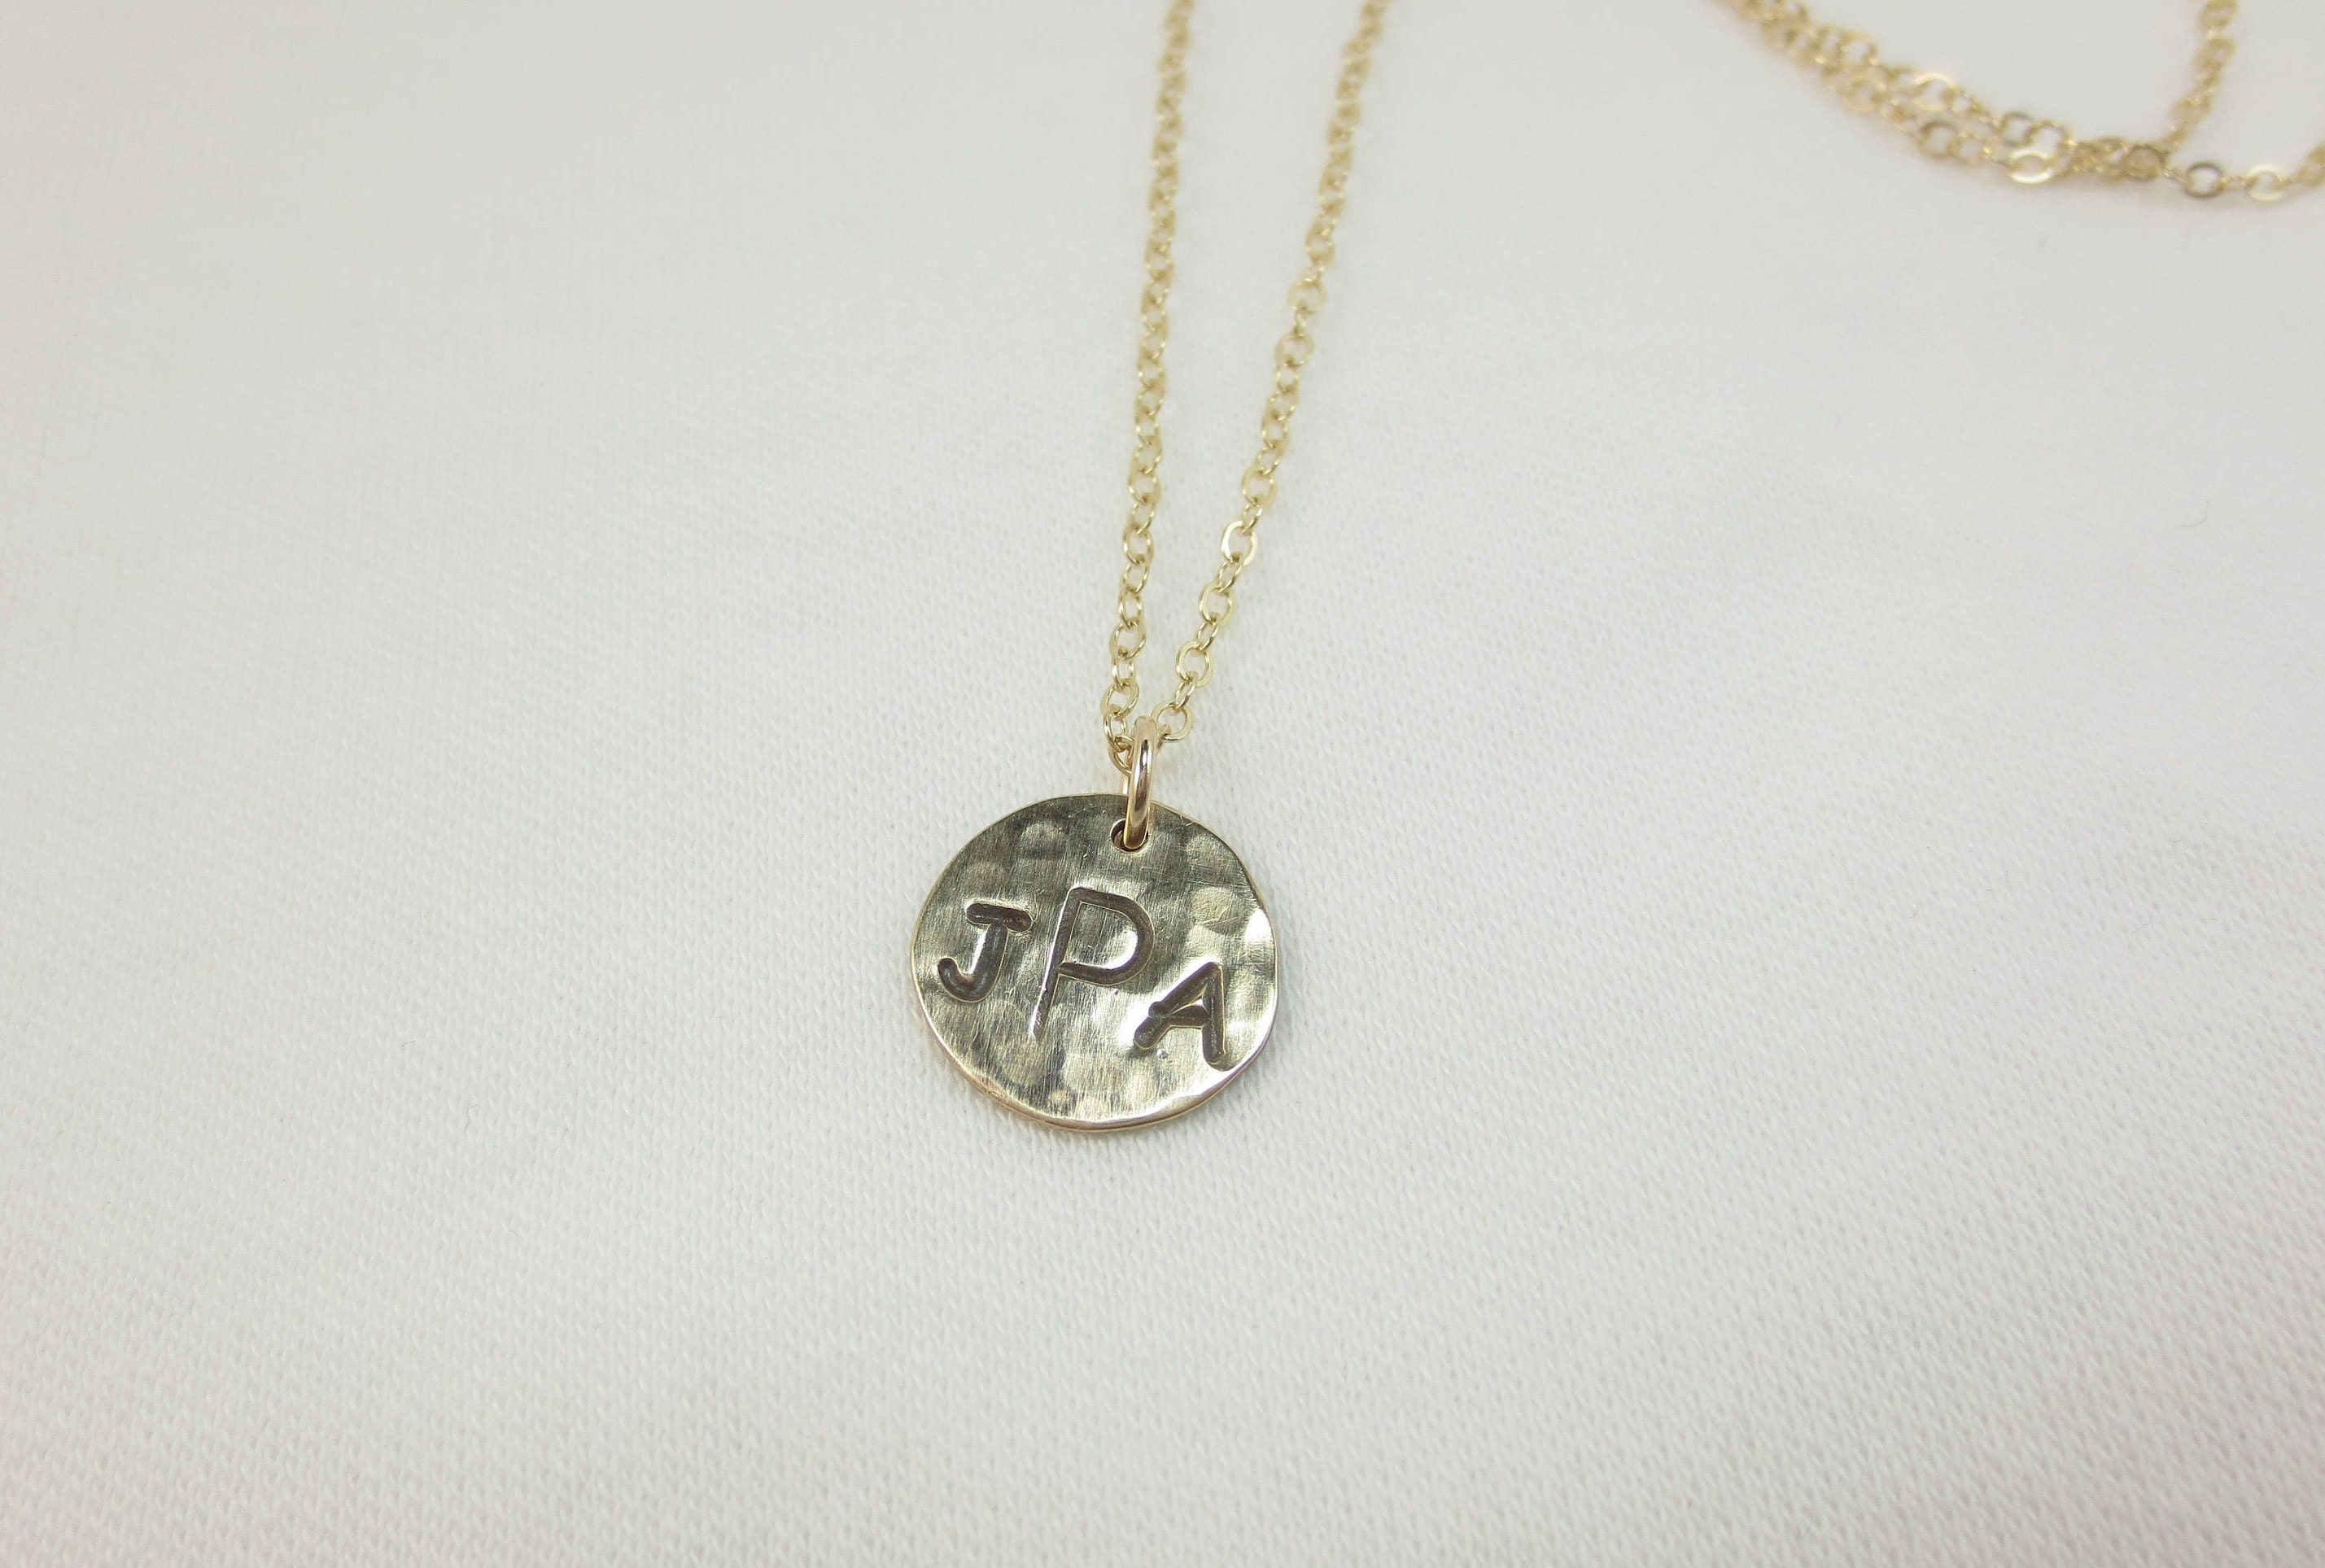 3 initial necklace 3 initial necklace gallery photo gallery photo gallery photo gallery photo mozeypictures Image collections